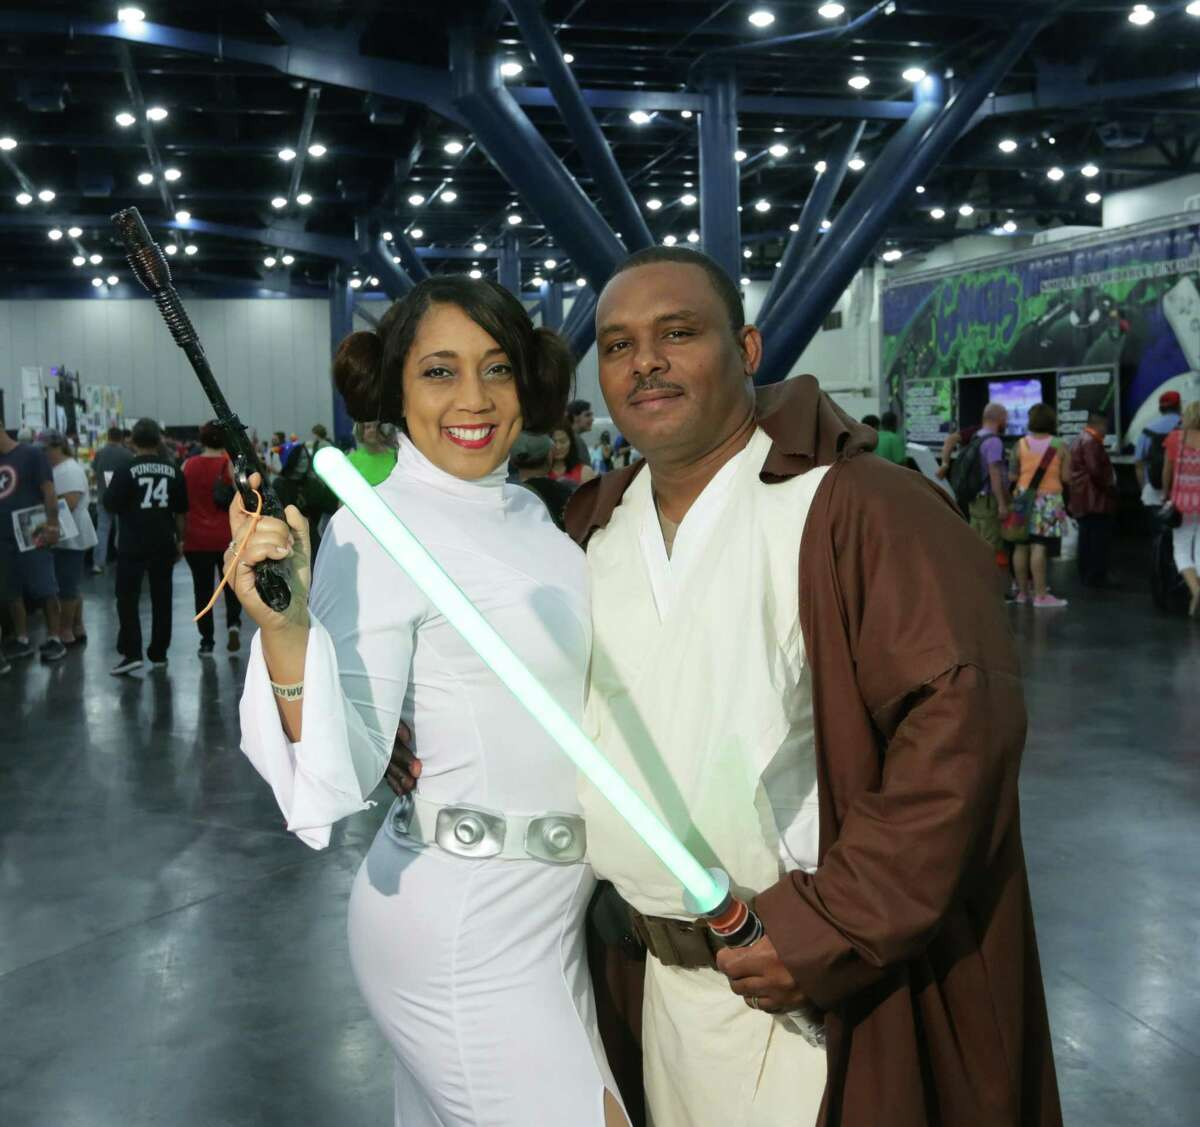 Fans pose for a photo at the Amazing! Houston Comic Con at the George R. Brown convention center, Saturday, Sept. 5, 2015, in Houston.